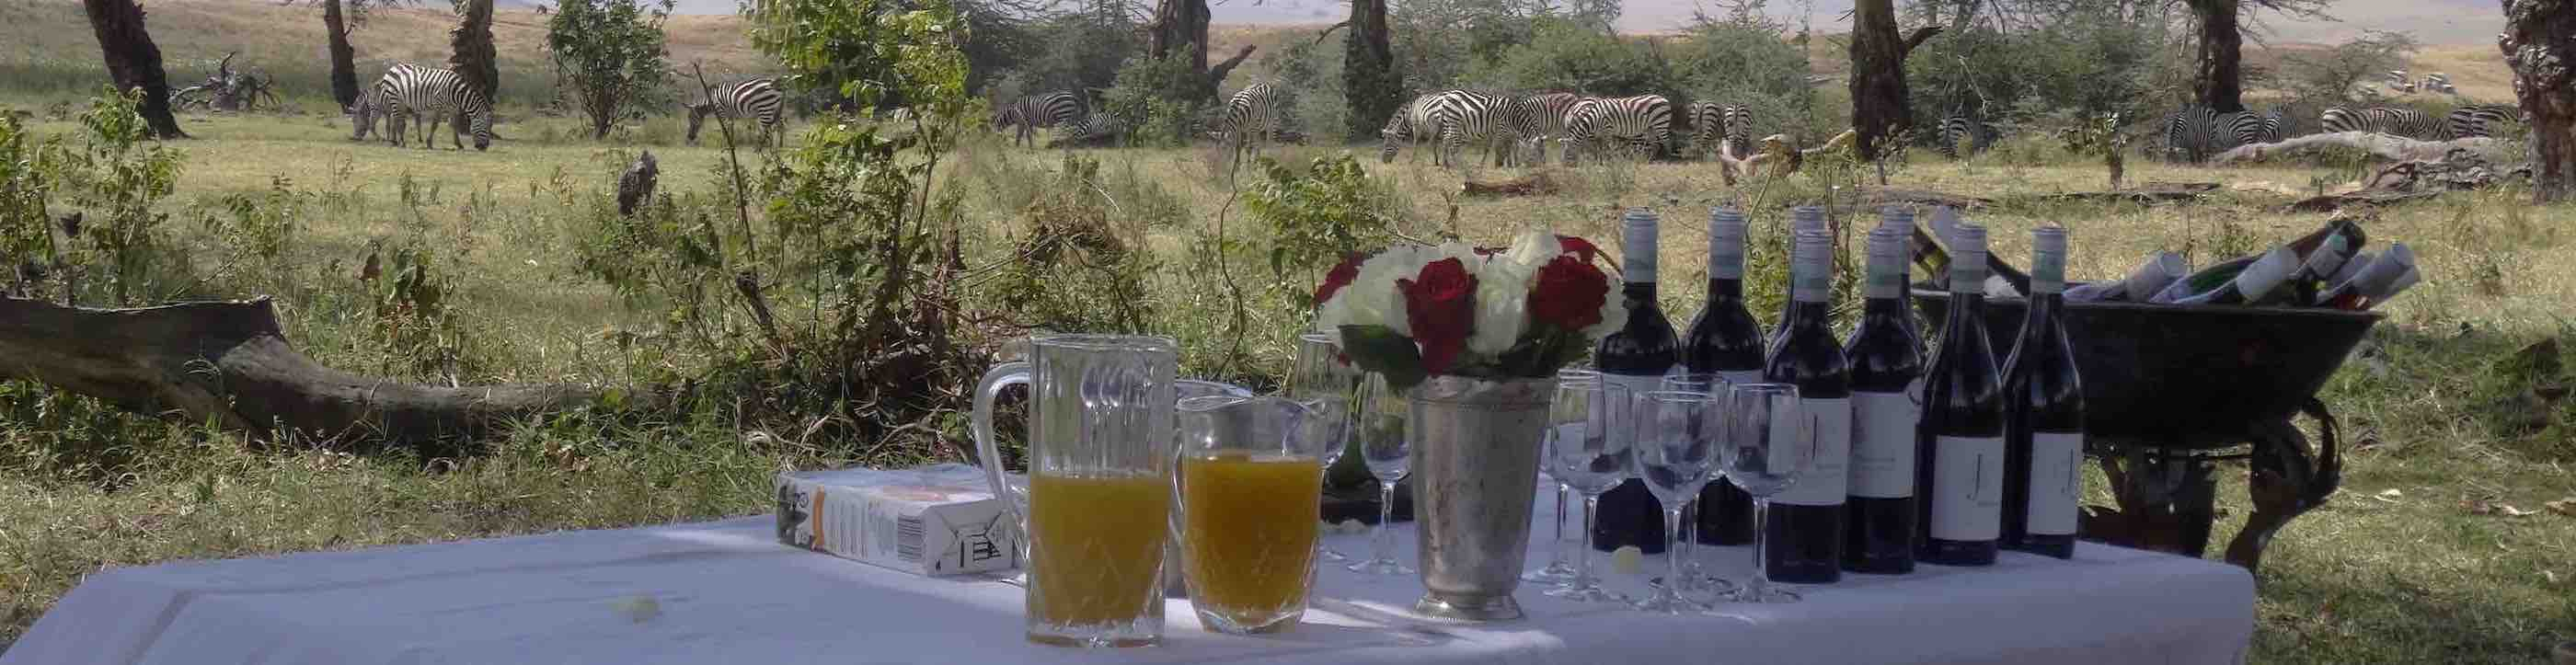 Tanzania camp drinks with classic East Africa bush view, managed by local community ecotourism hunti